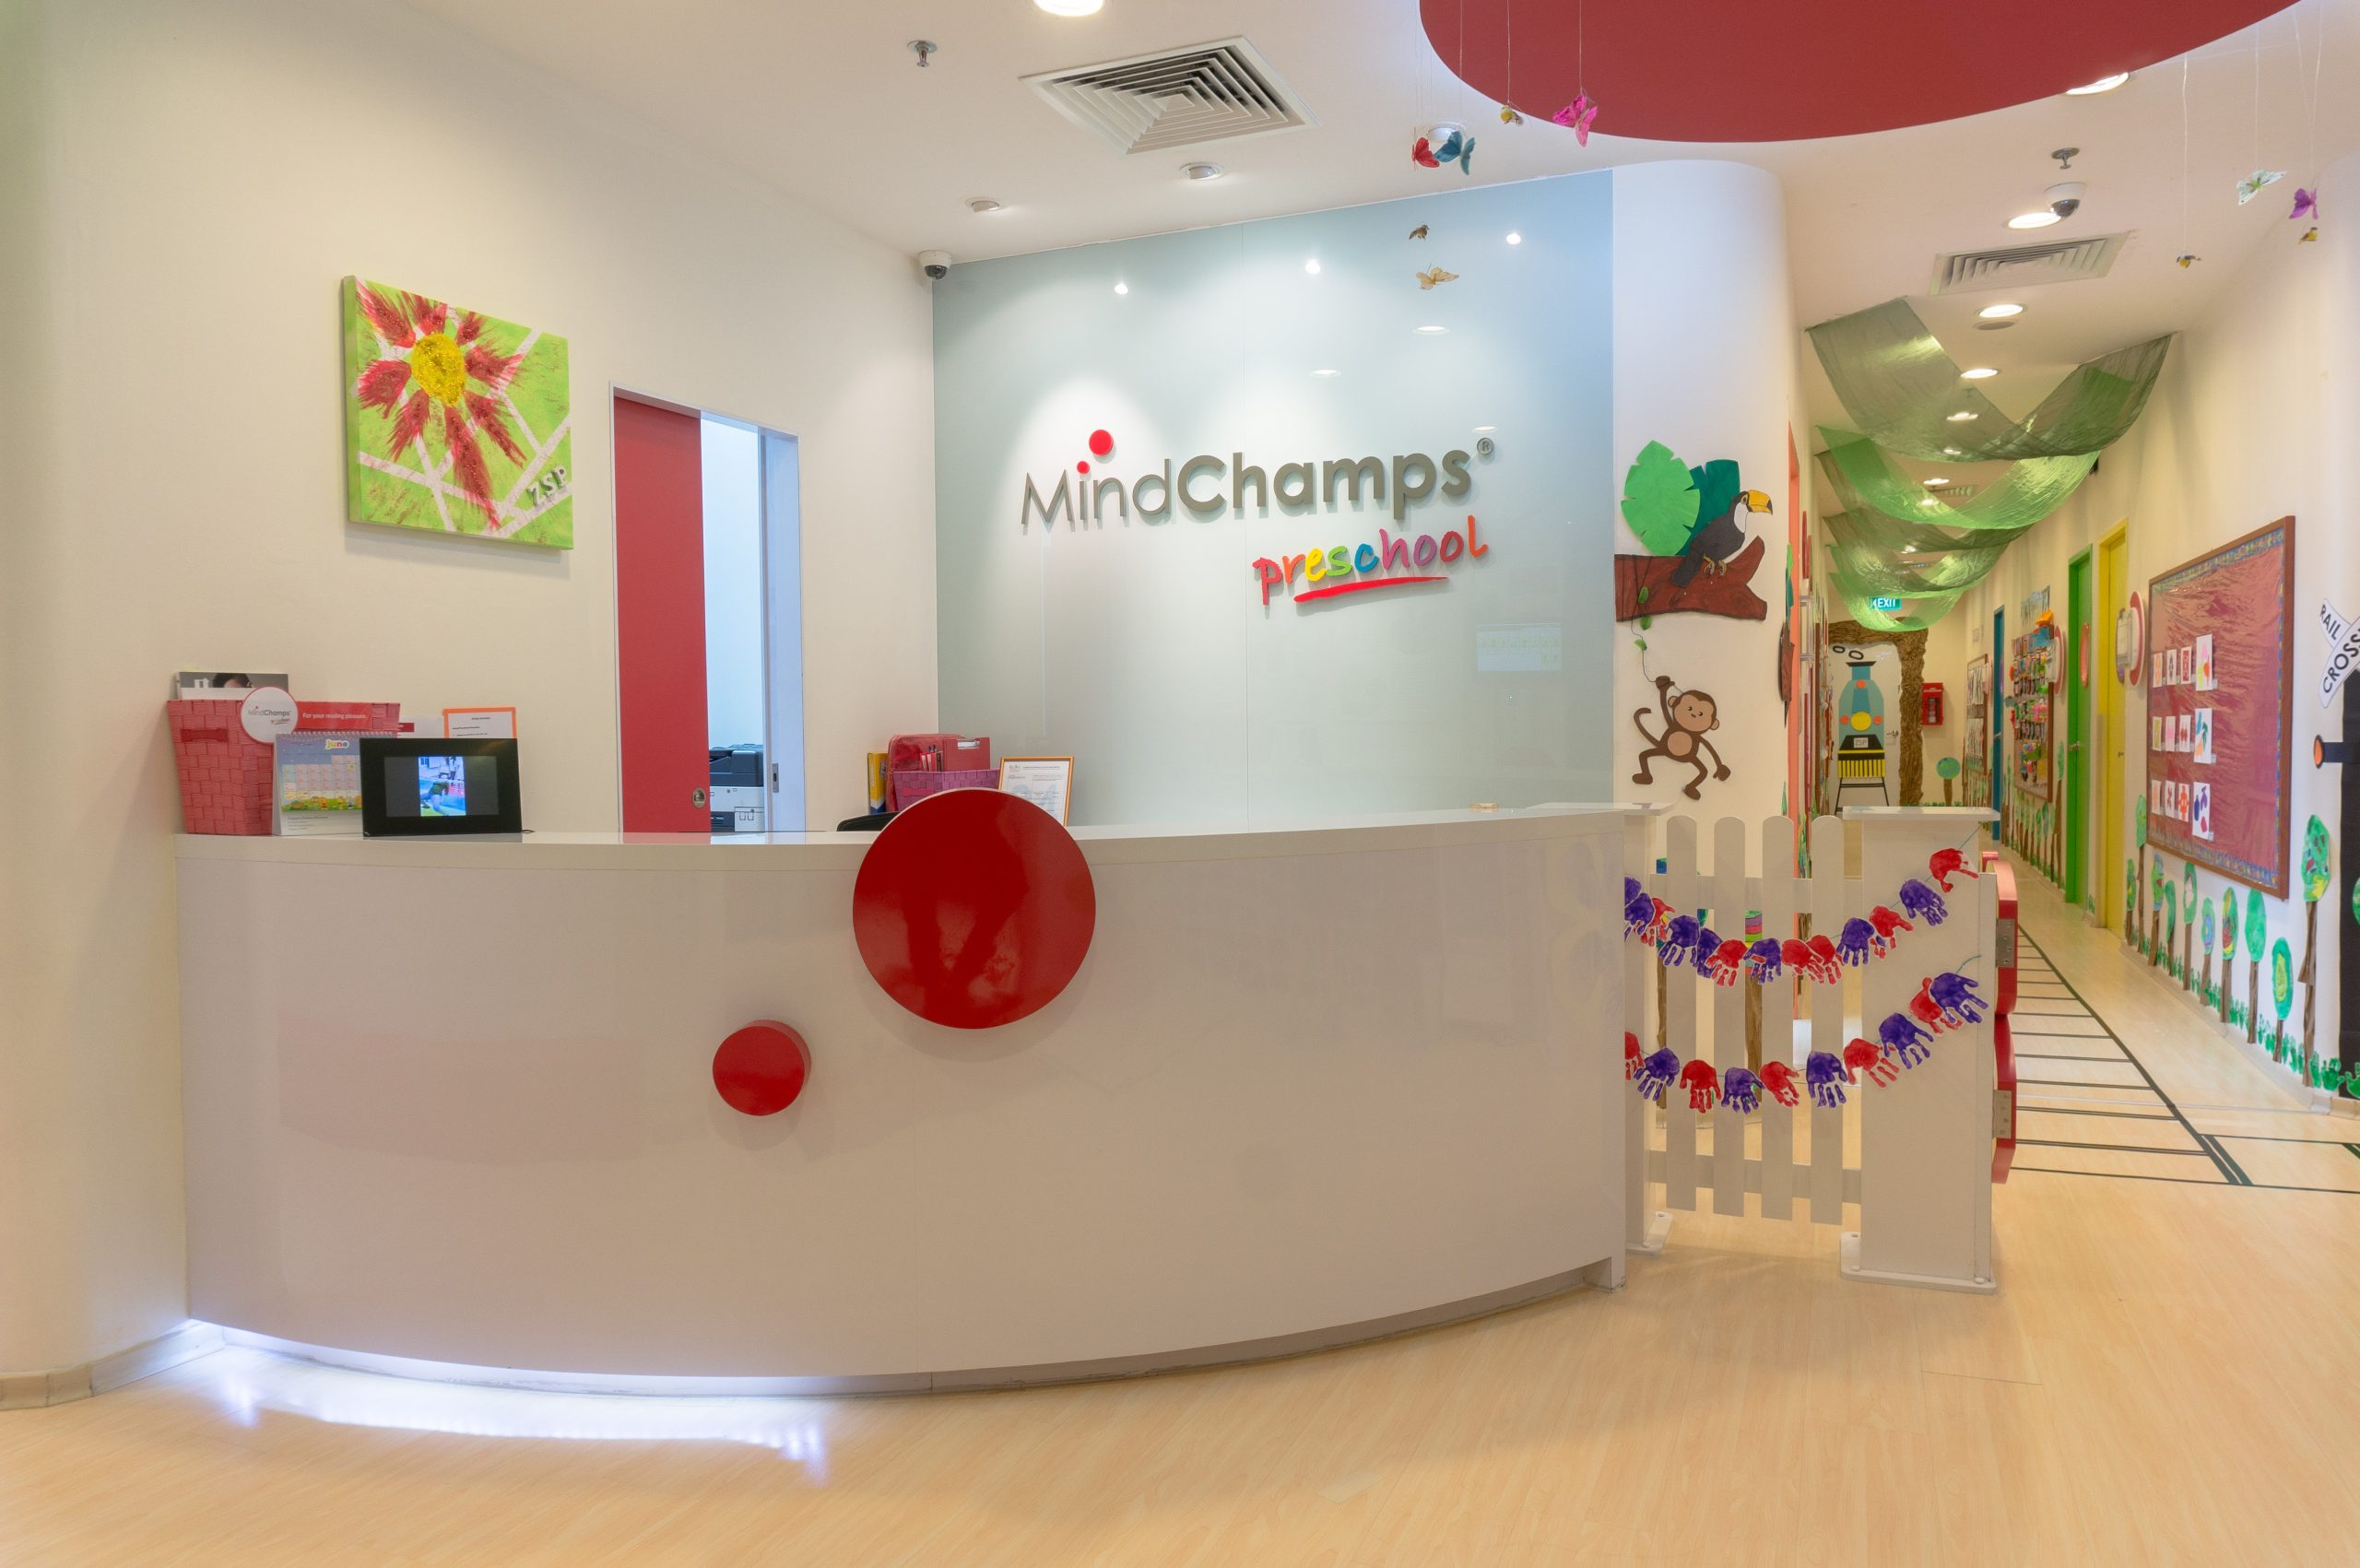 MindChamps Preschool in zhongshan Park